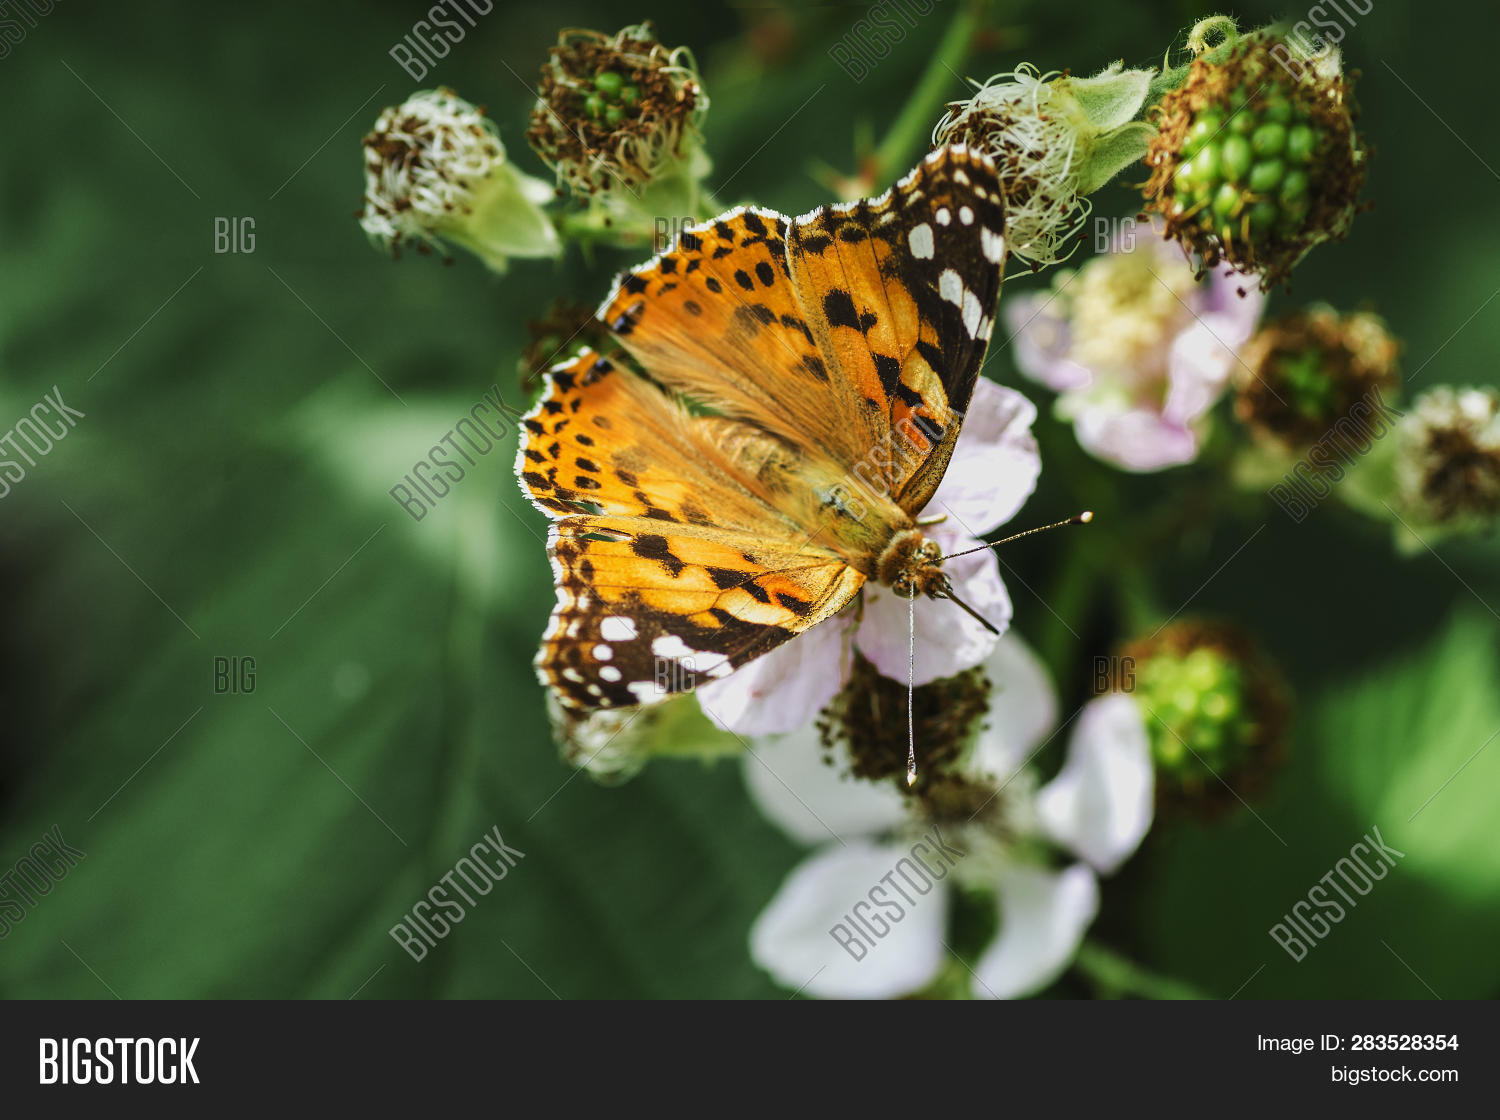 BlackBerry,abdomen,animal,antenna,background,beauty,black,blossom,butterfly,change,close-up,collects,color,copy,cycle,entomologist,flower,fragility,garden,head,image,insect,invertebrate,lepidoptera,life,macro,moustache,nature,nectar,new,open,opening,orange,out,pets,short,single,spring,white,wild,wildflower,wildlife,wing